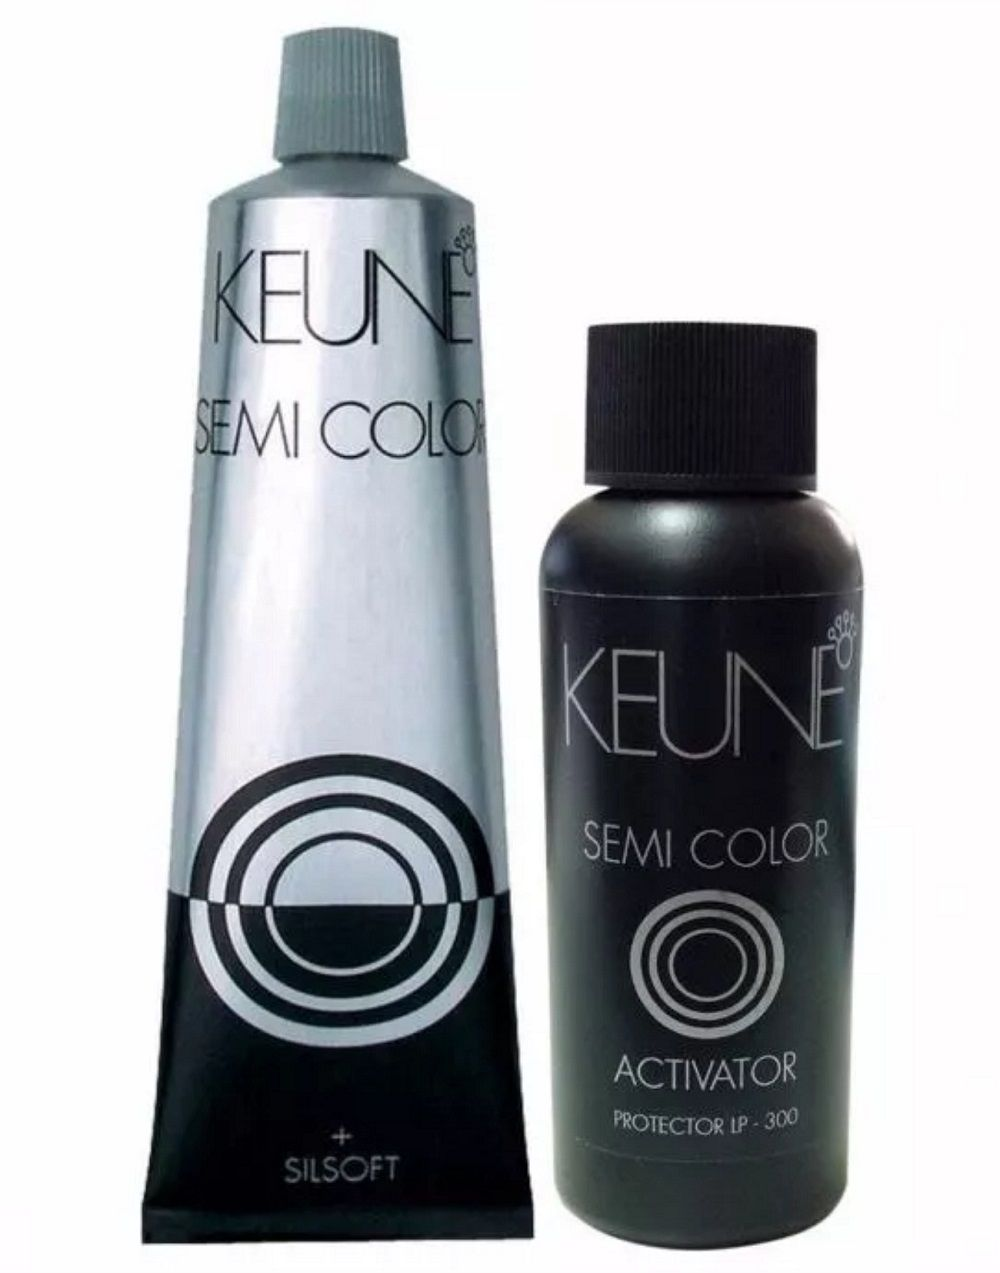 Kit Keune Semi Color 60ml - Cor 8 - Louro Claro + Ativador 60ml